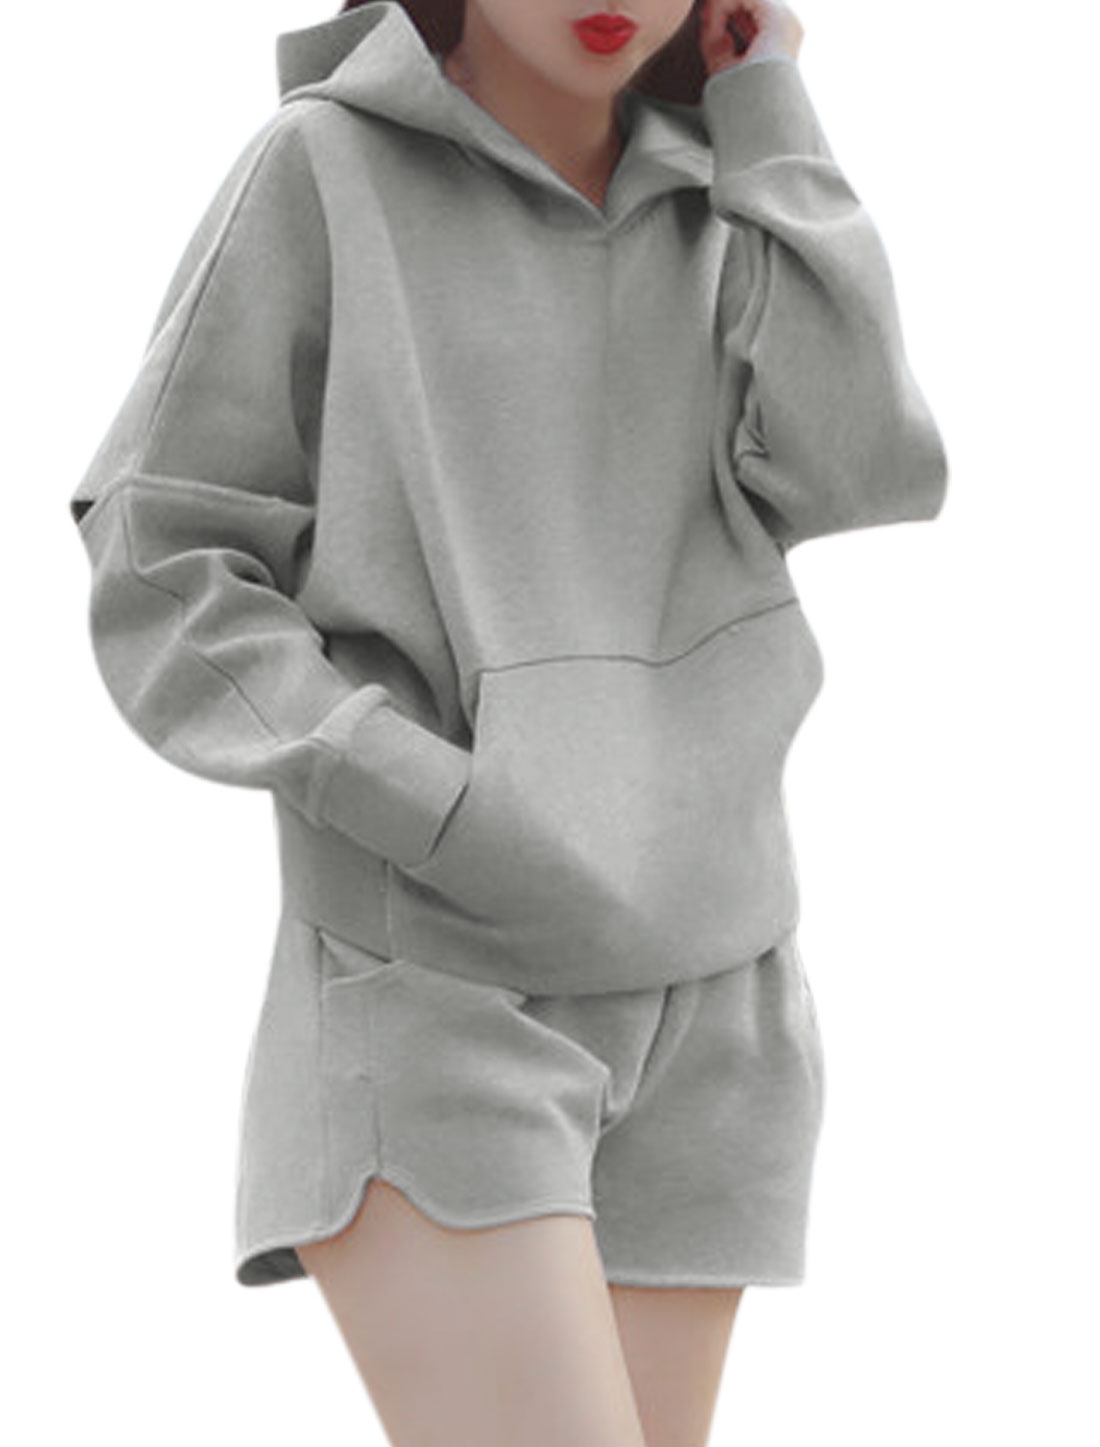 Lady Kangaroo Pocket Pullover Hooded Top w Casual Shorts Sets Light Gray XS